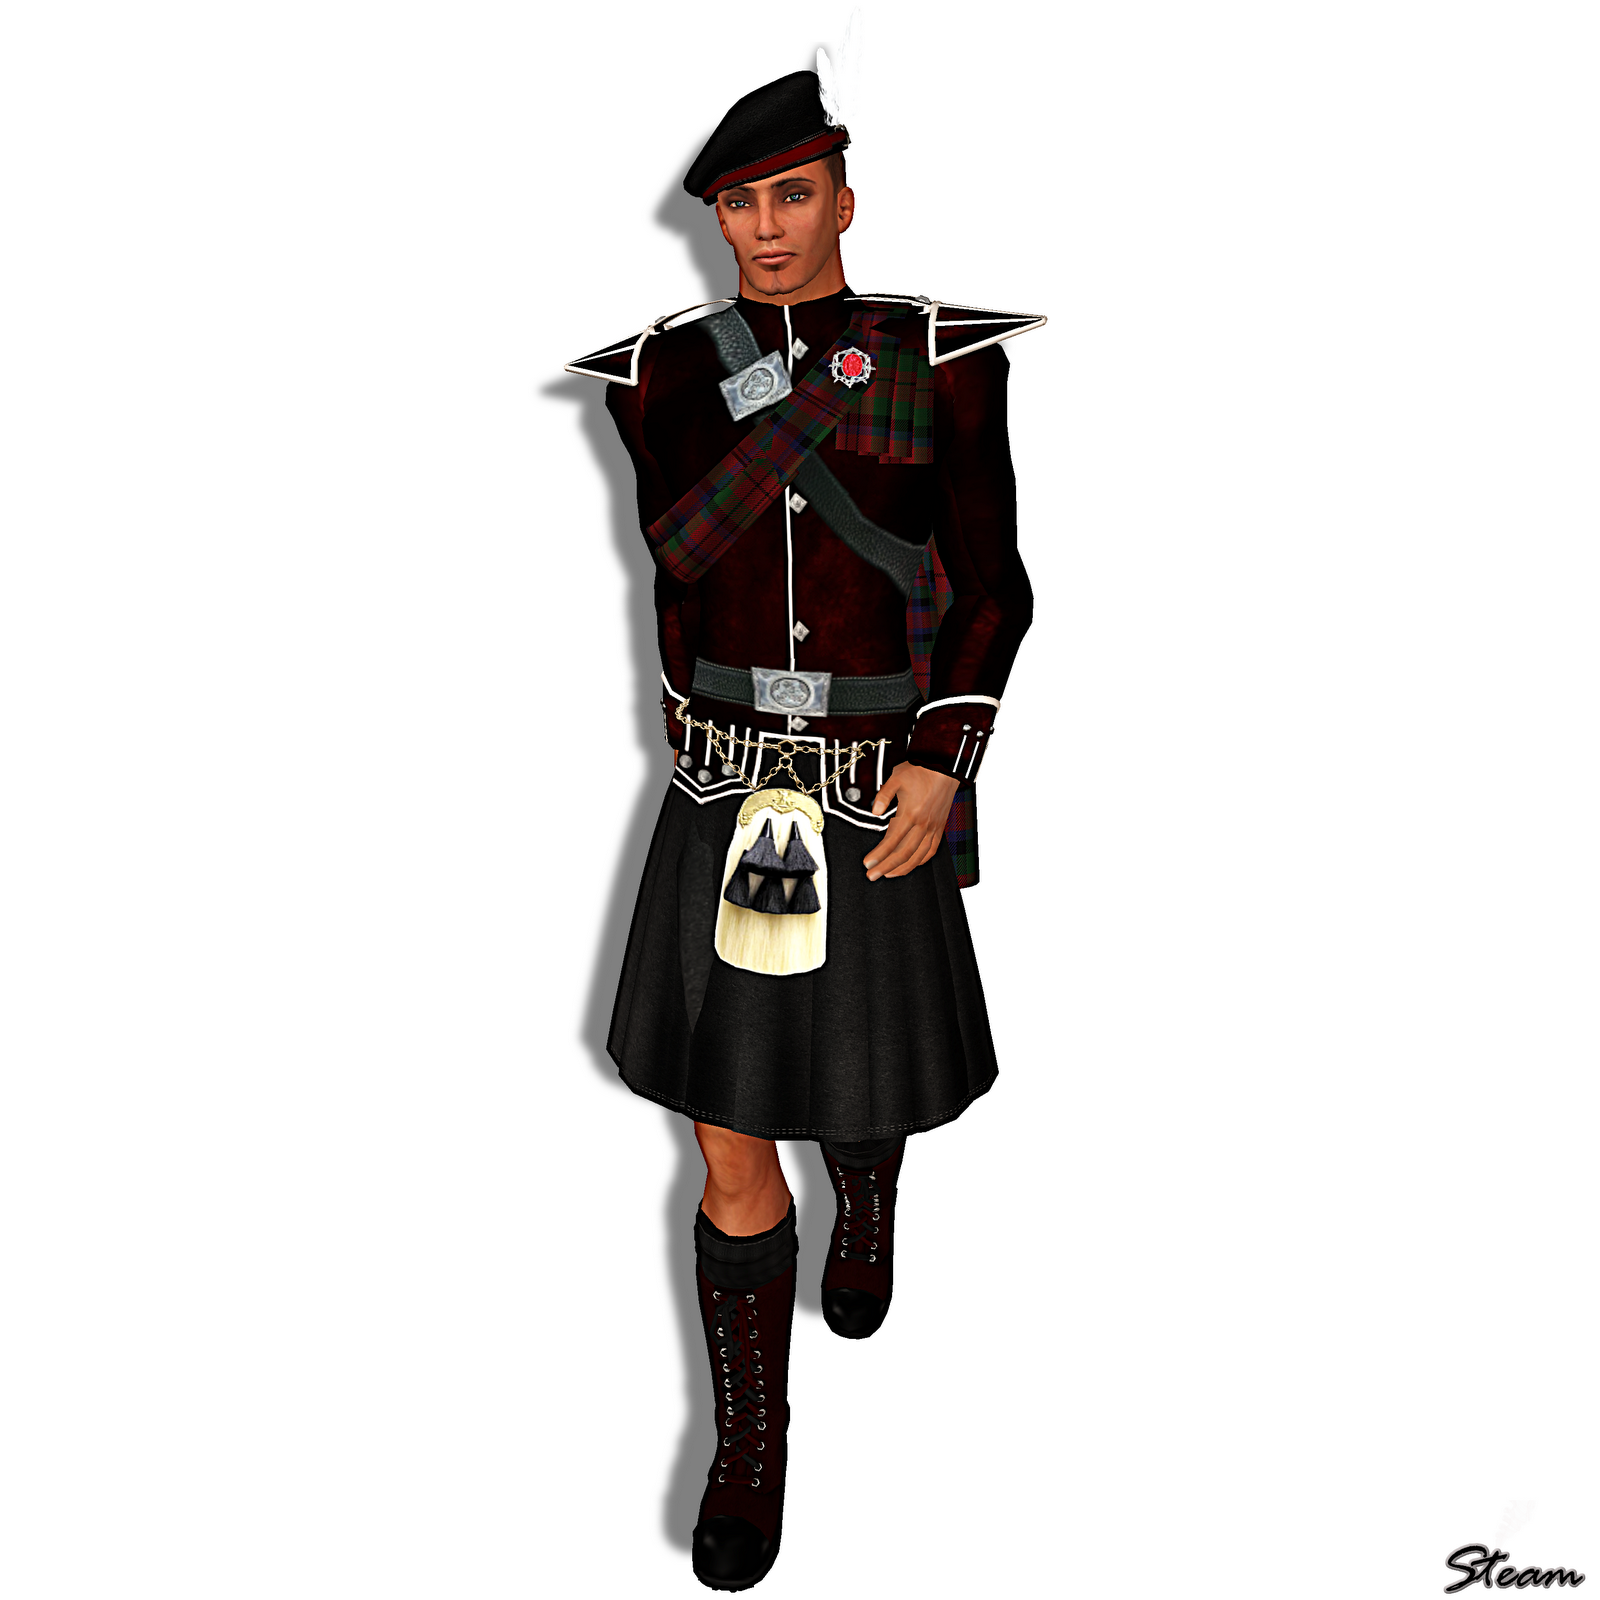 Steam 39 S Style A Journey In Male Sl Fashion What 39 S Under Your Kilt A K A Yet Another Look At